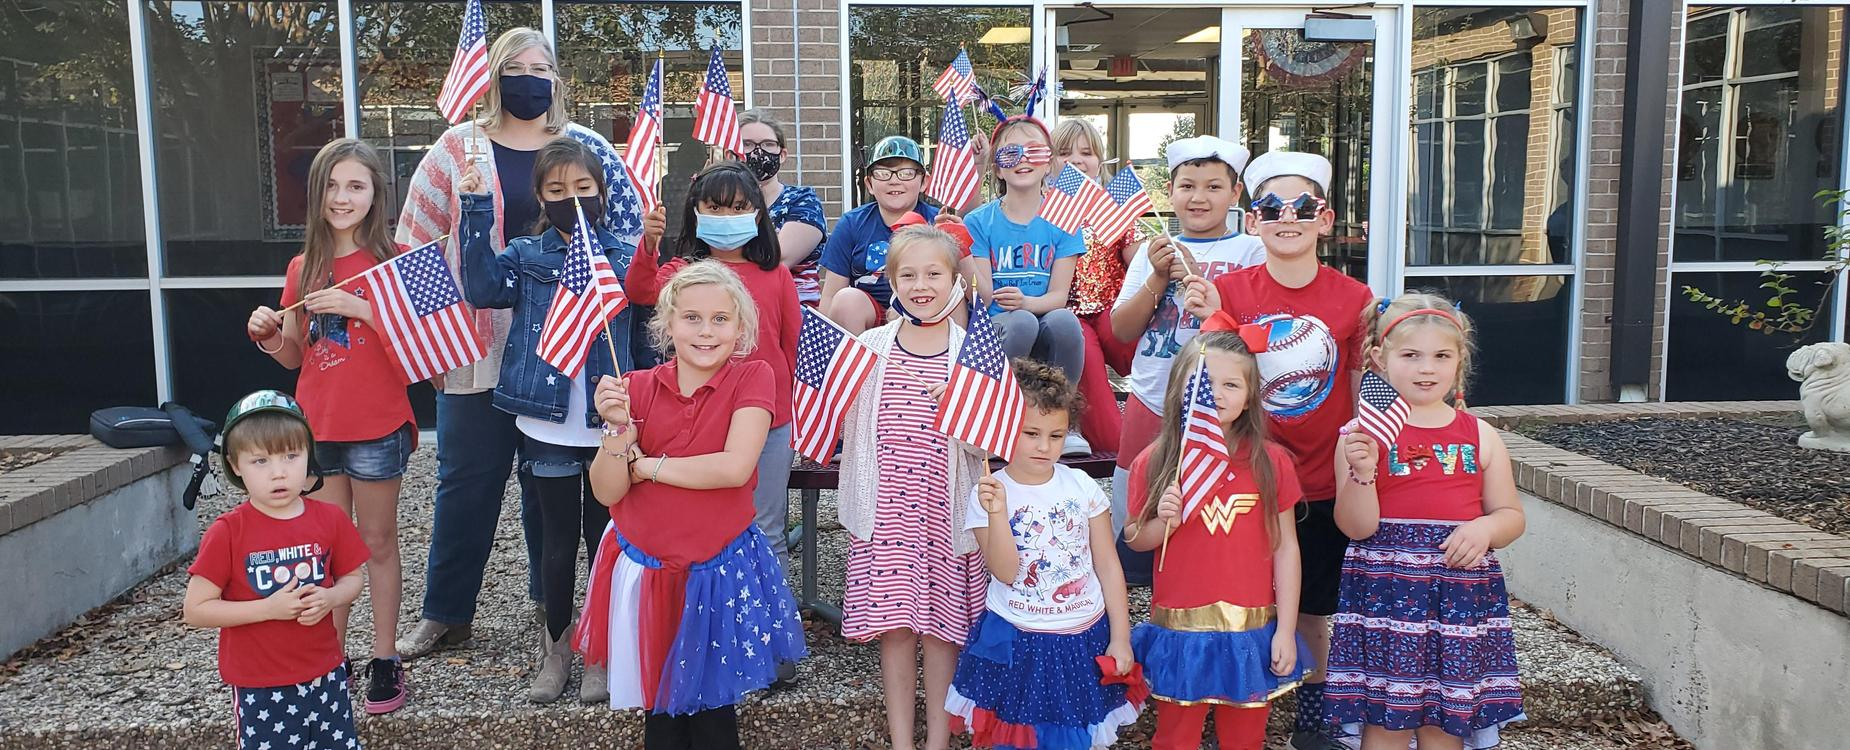 Veterans Day Students in red, white and blue